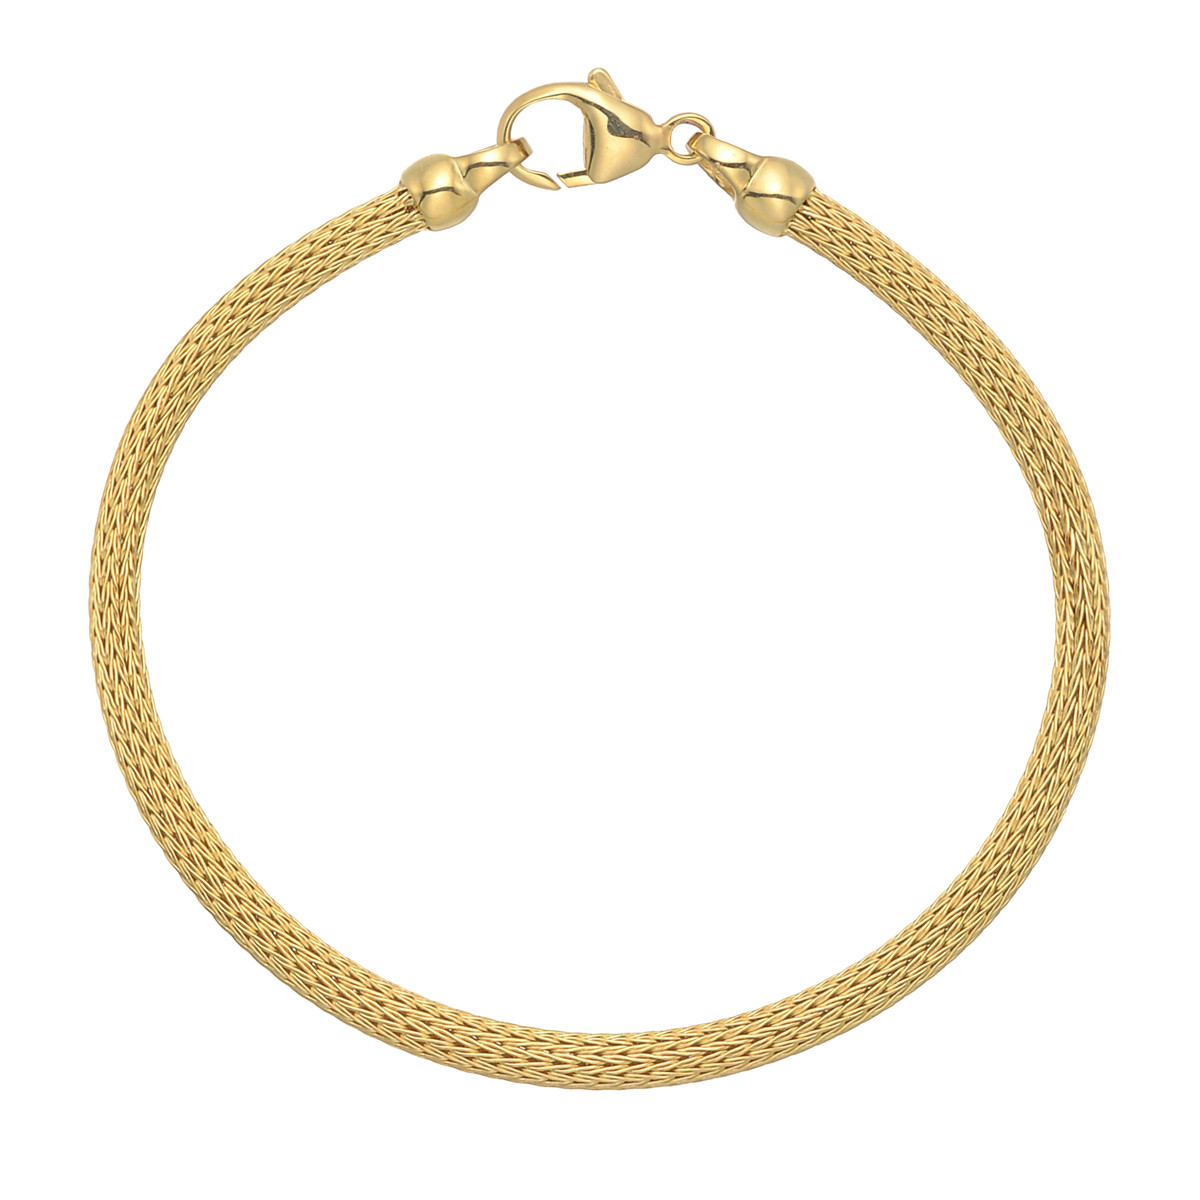 18k Yellow Gold Double Knit Mesh Bracelet